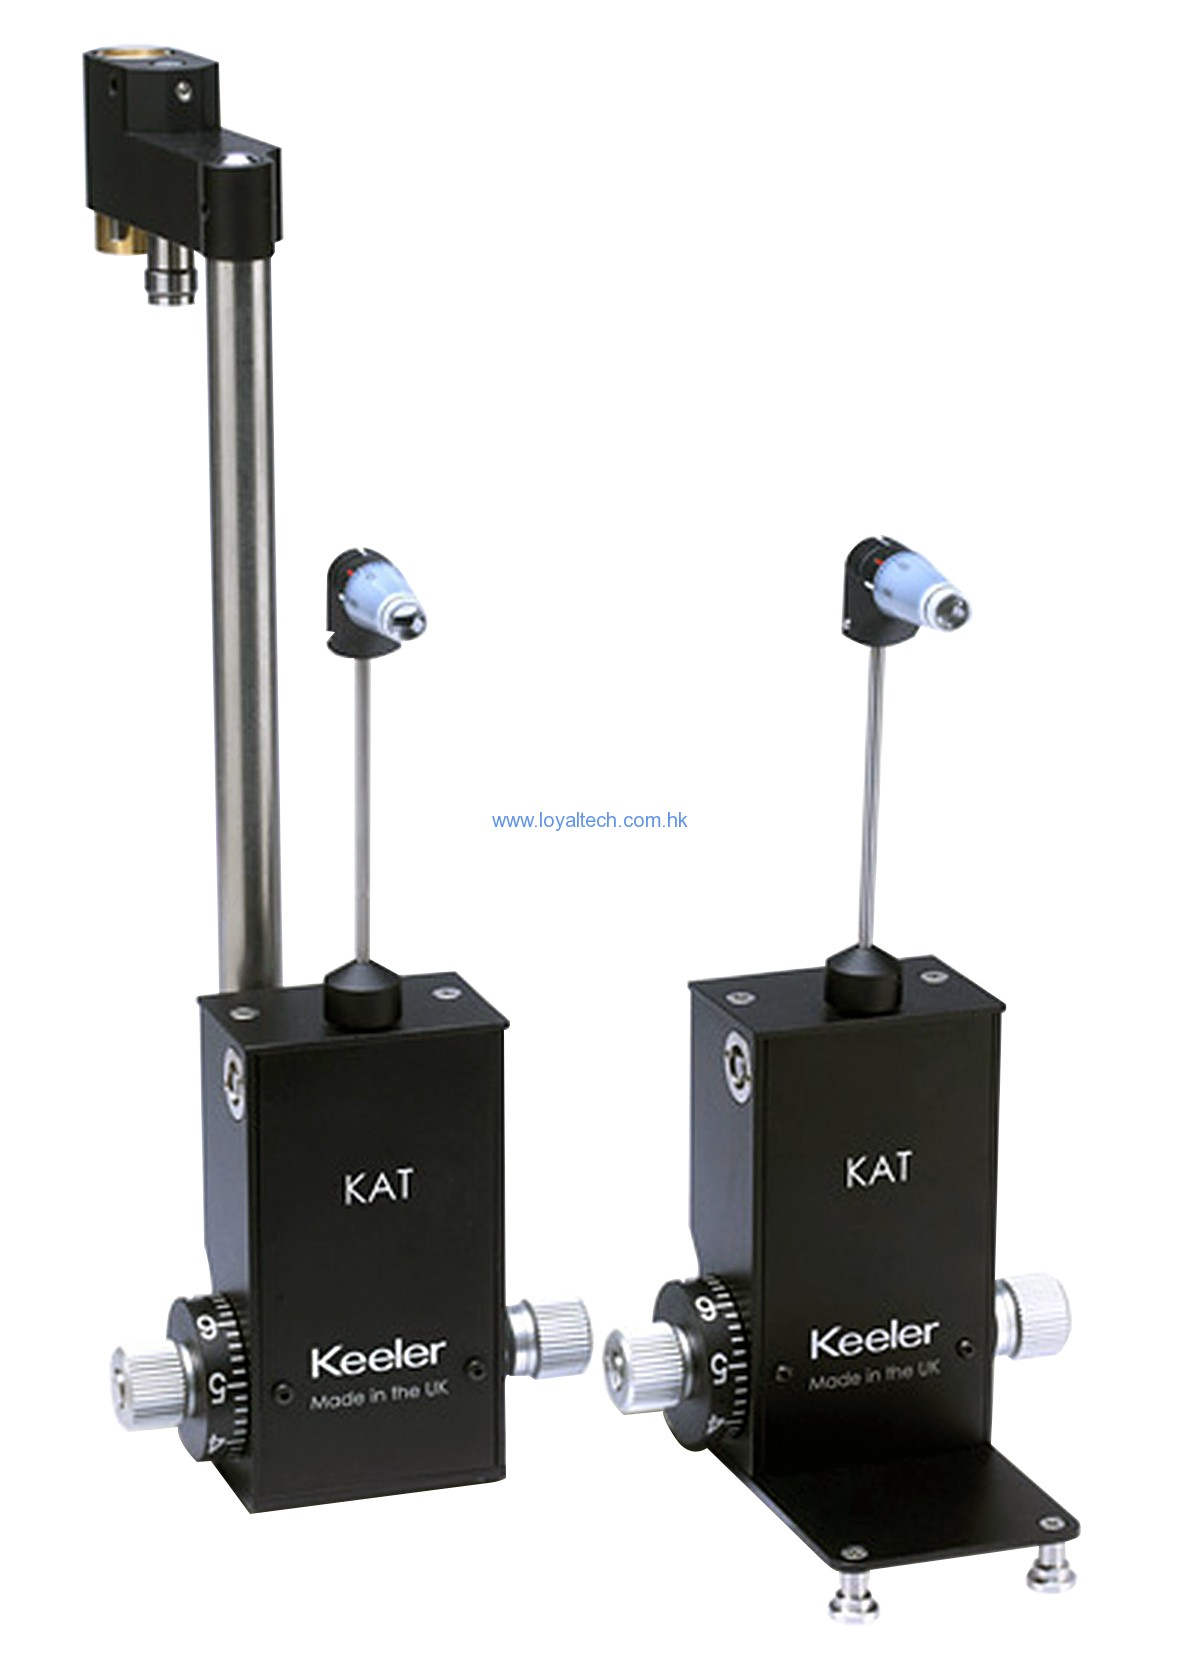 KAT Applanation Tonometer